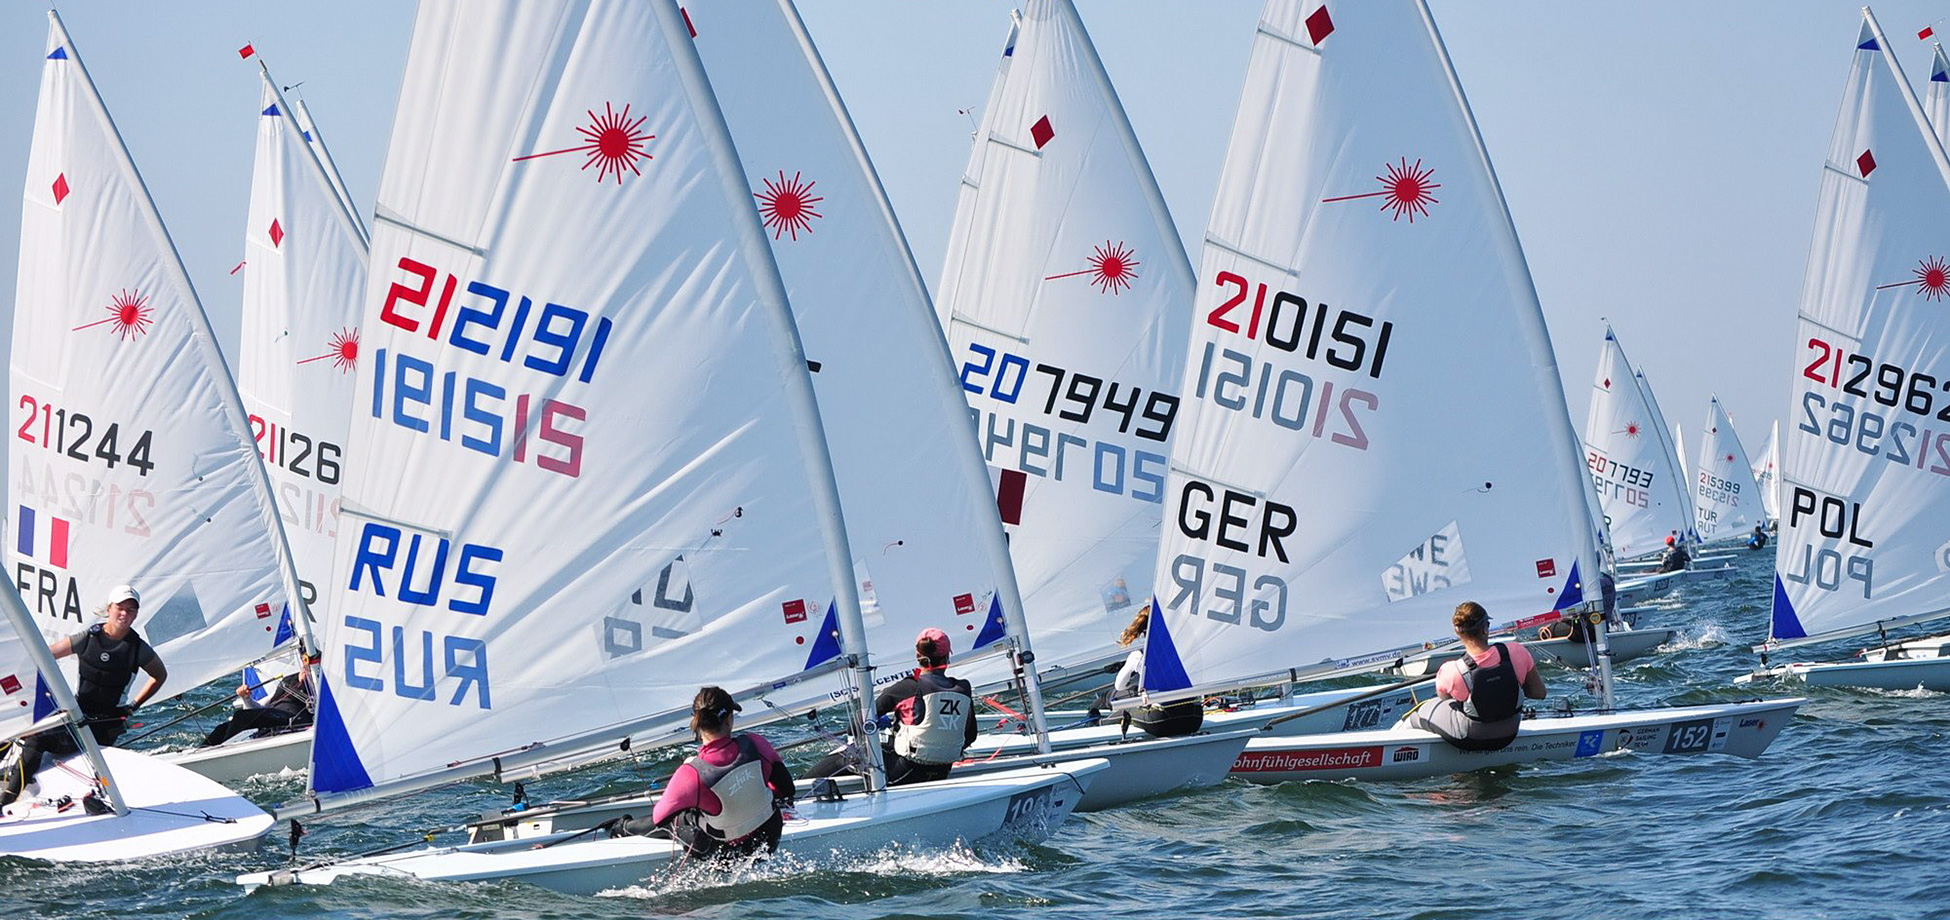 2019 Laser Under 21 Europeans day 3